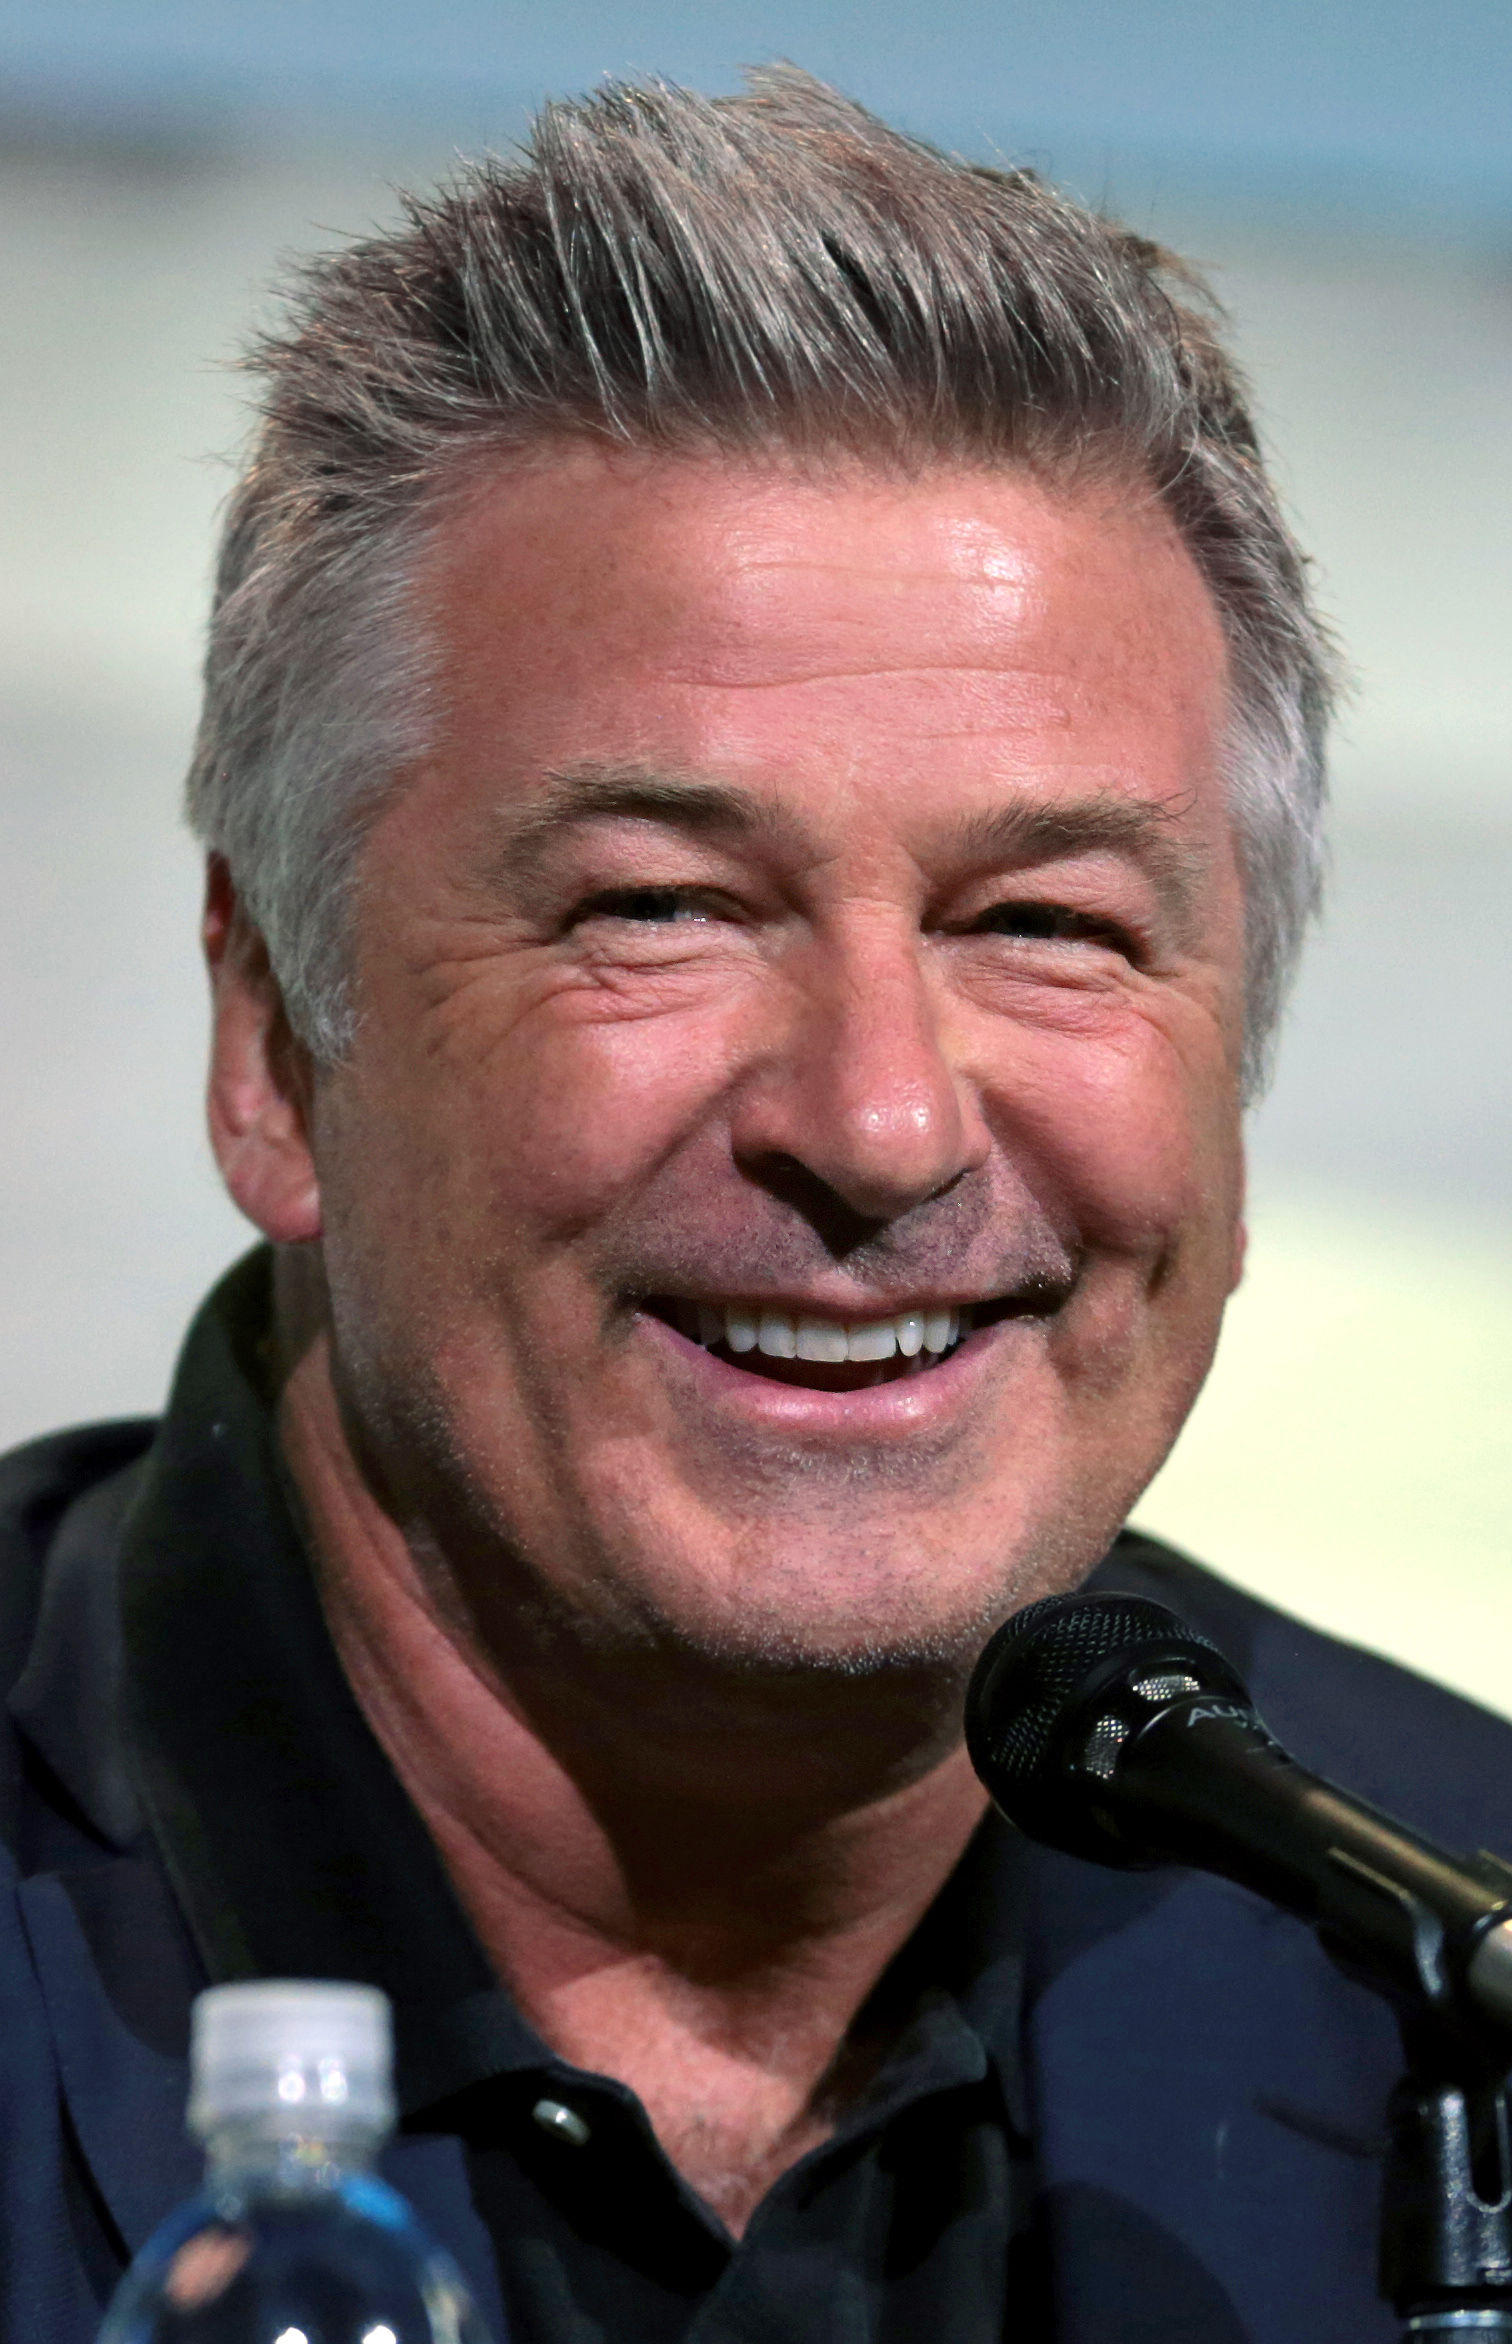 Photo of Alec Baldwin: Film and television actor from the United States